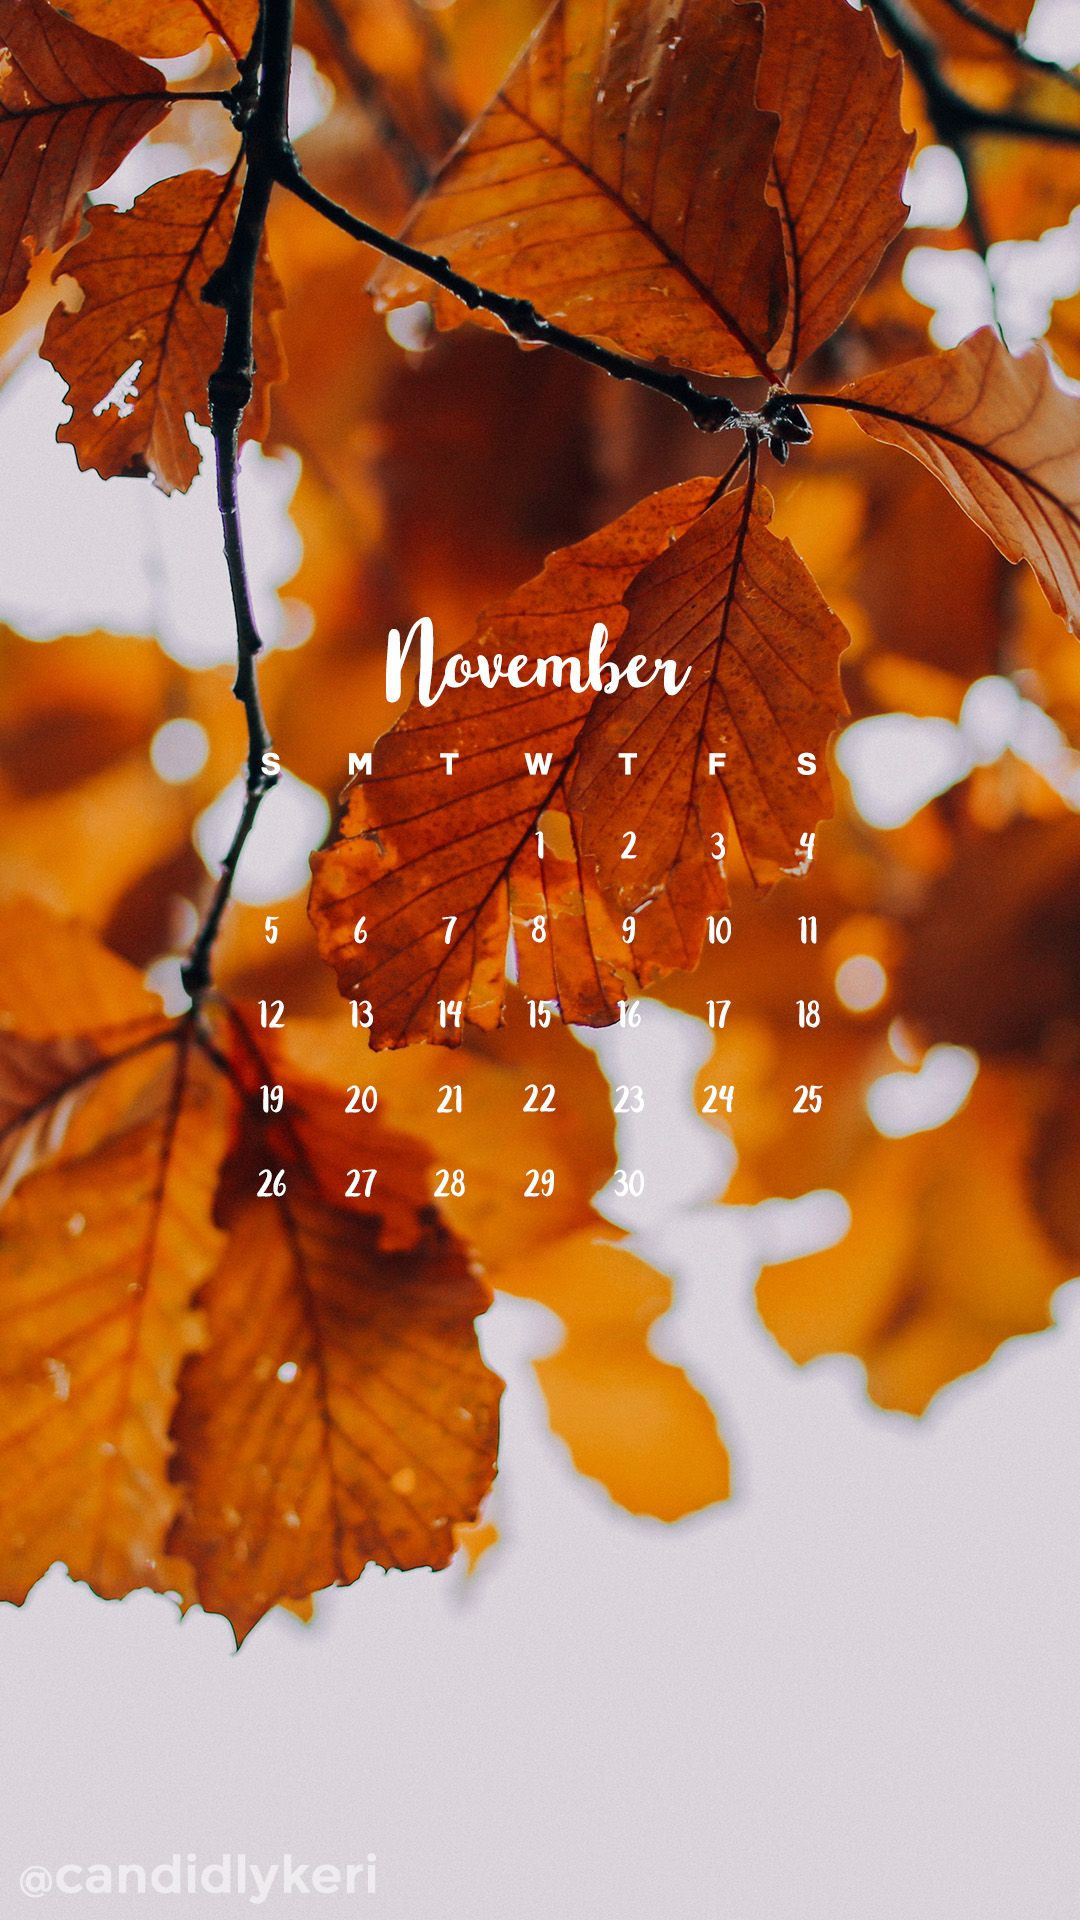 Free Fall Mobile Phone Wallpapers Golden Changing Fall Leaves November Calendar 2017